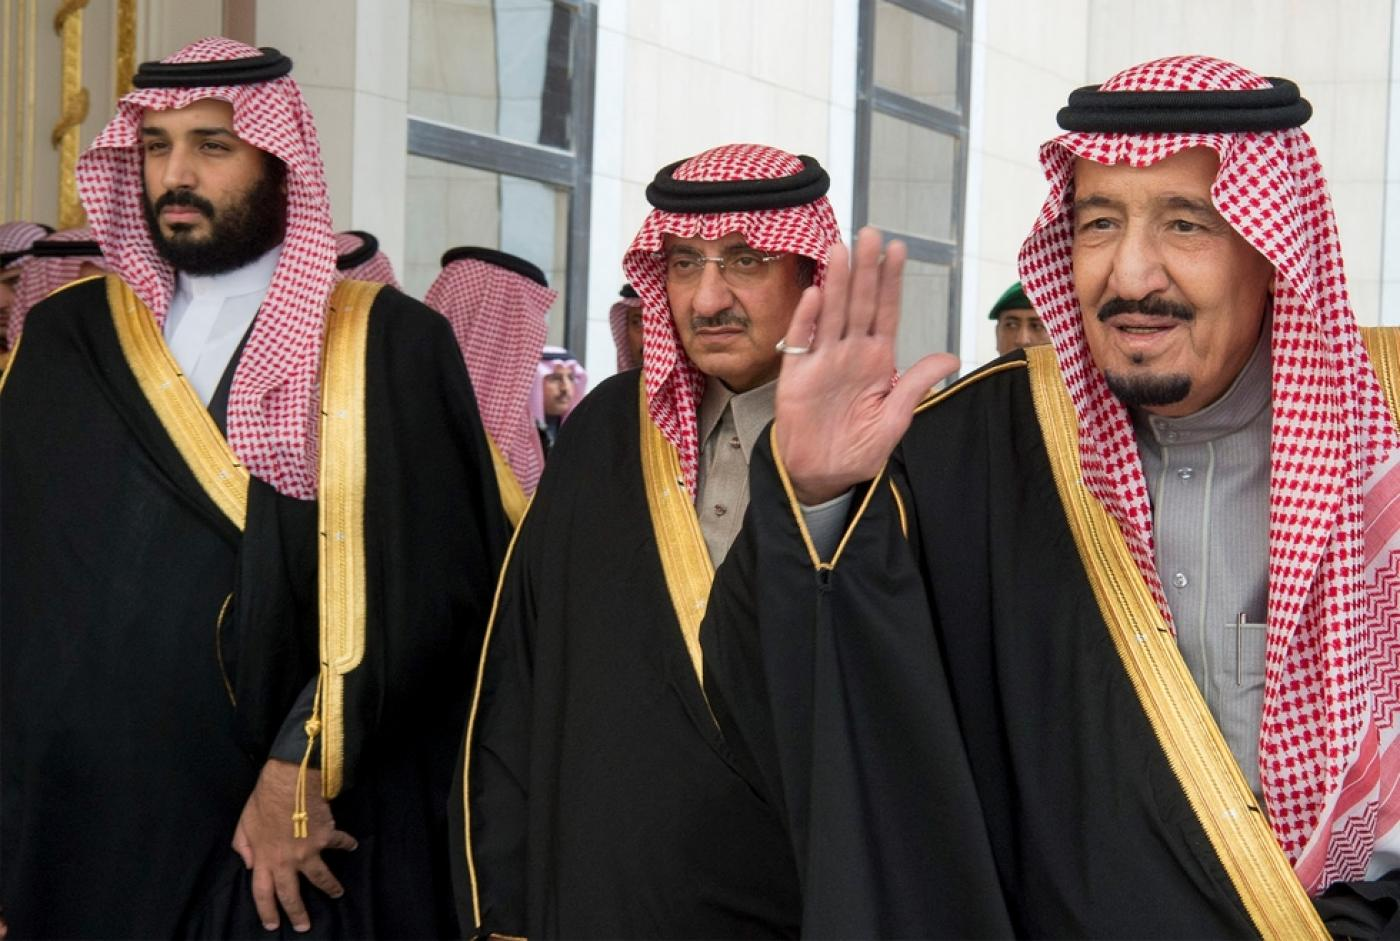 Only death': How Mohammed bin Salman has torn up the rules of